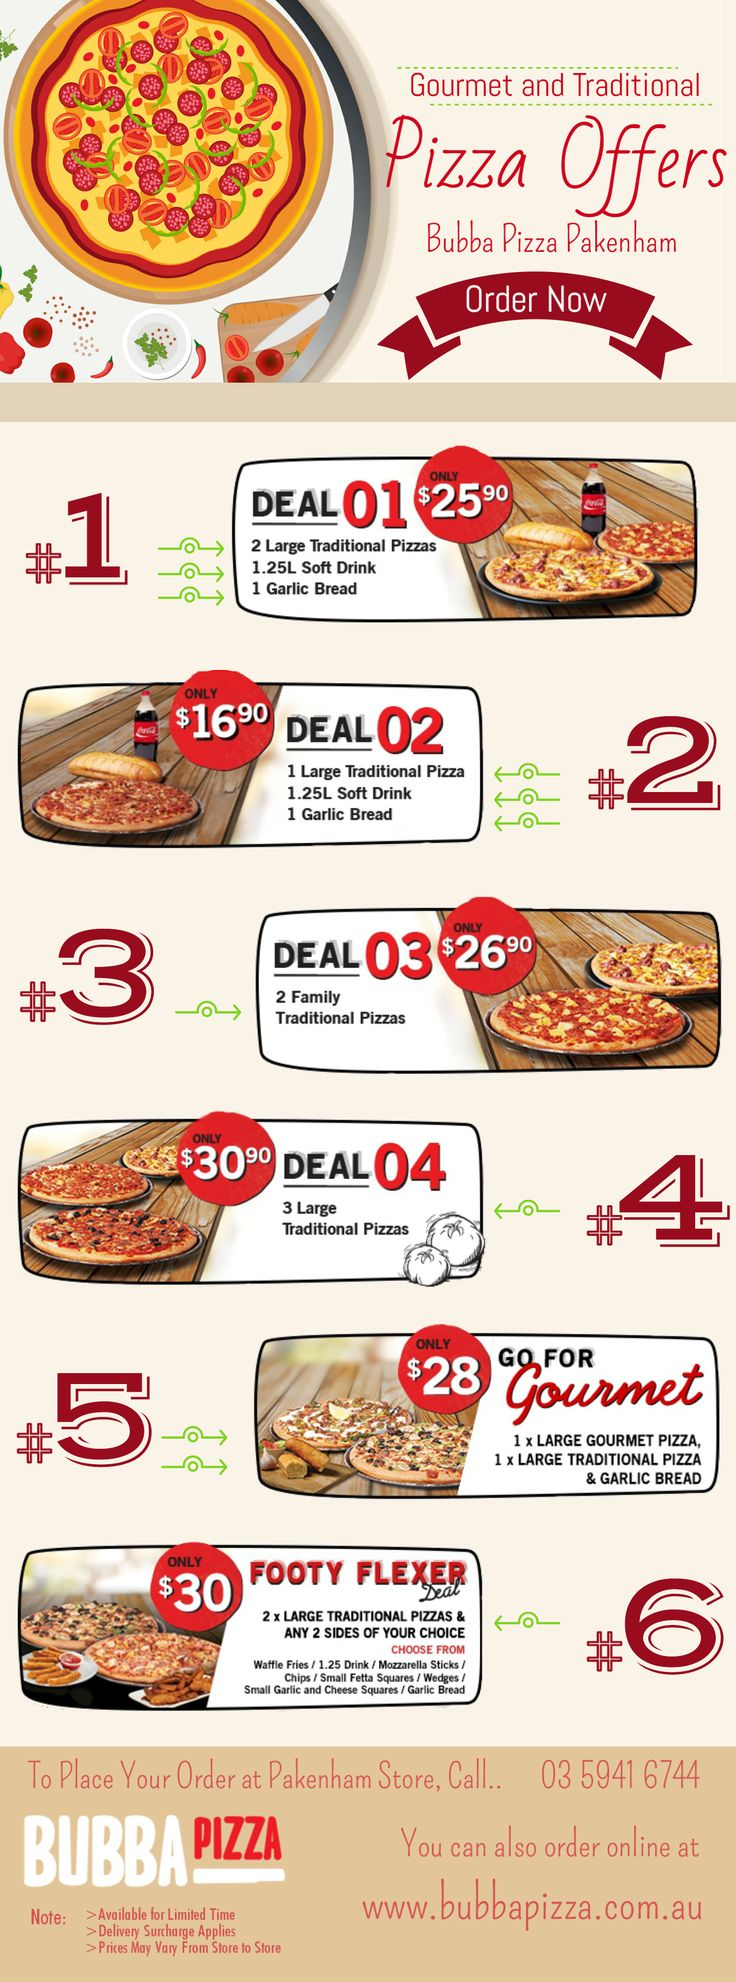 A Hot Pizza is the best thing in this chilly weather and the most important thing is that it can be delivered to your door, so what are you waiting for? Check out this infographic and get some gourmet and traditional #pizza offers! Contact your nearest Bubba pizza store to place your order.